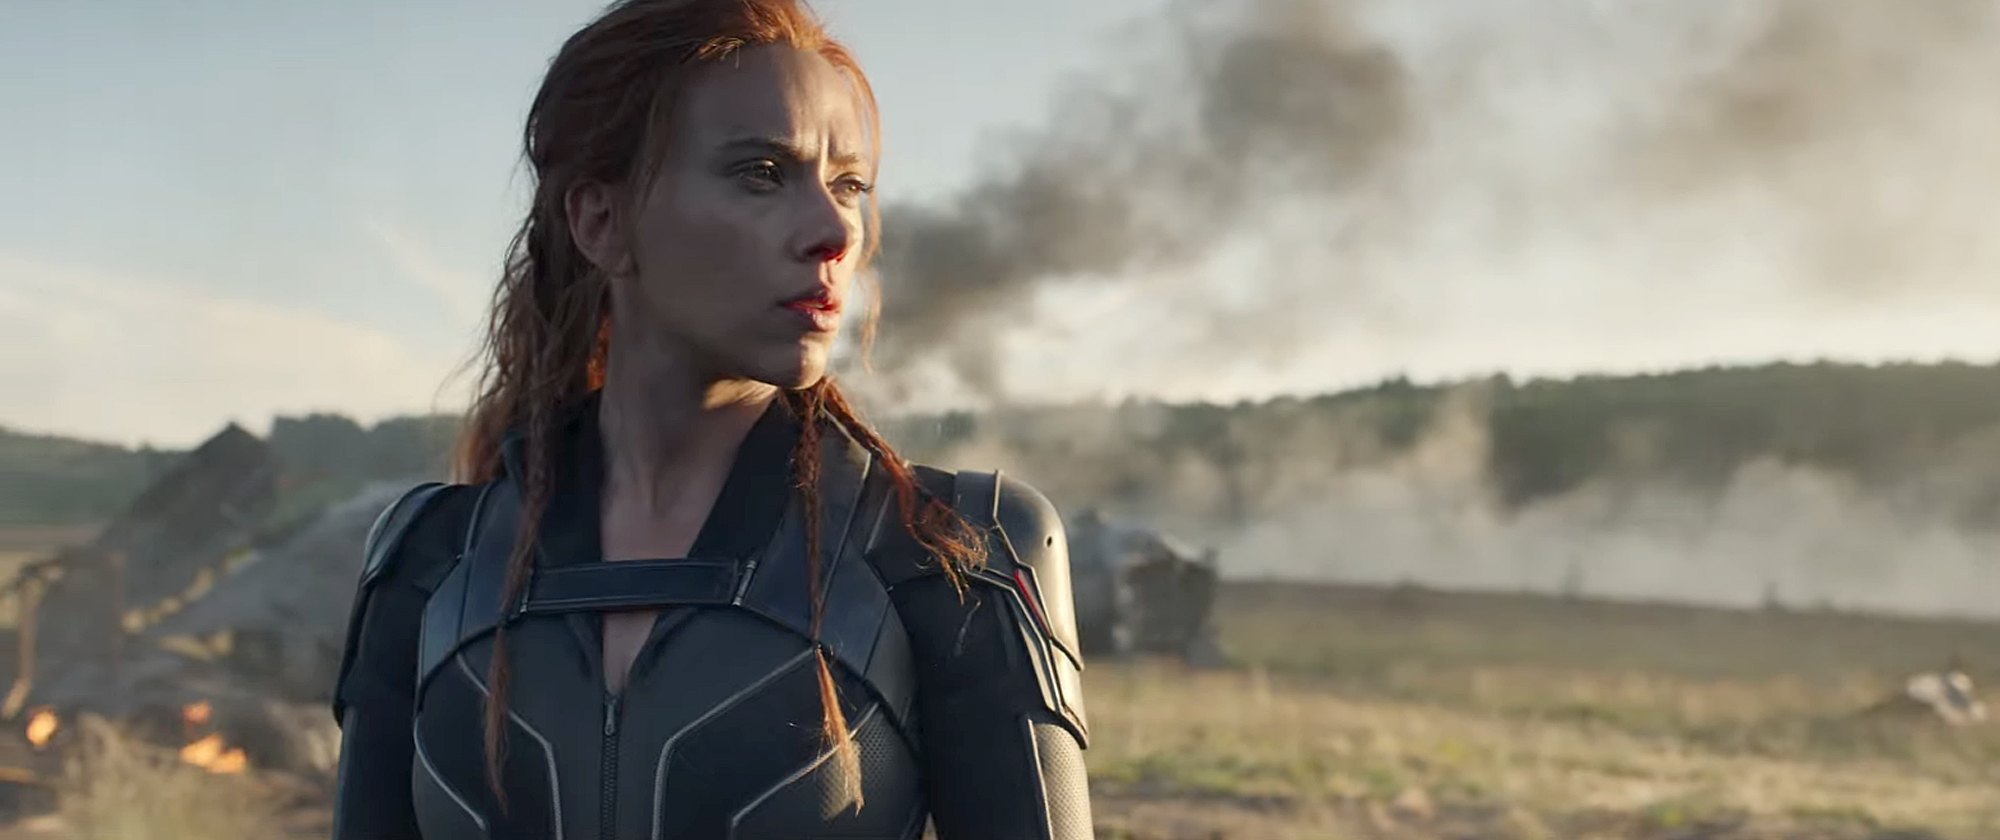 Marvel Studios' Black Widow - Official Teaser